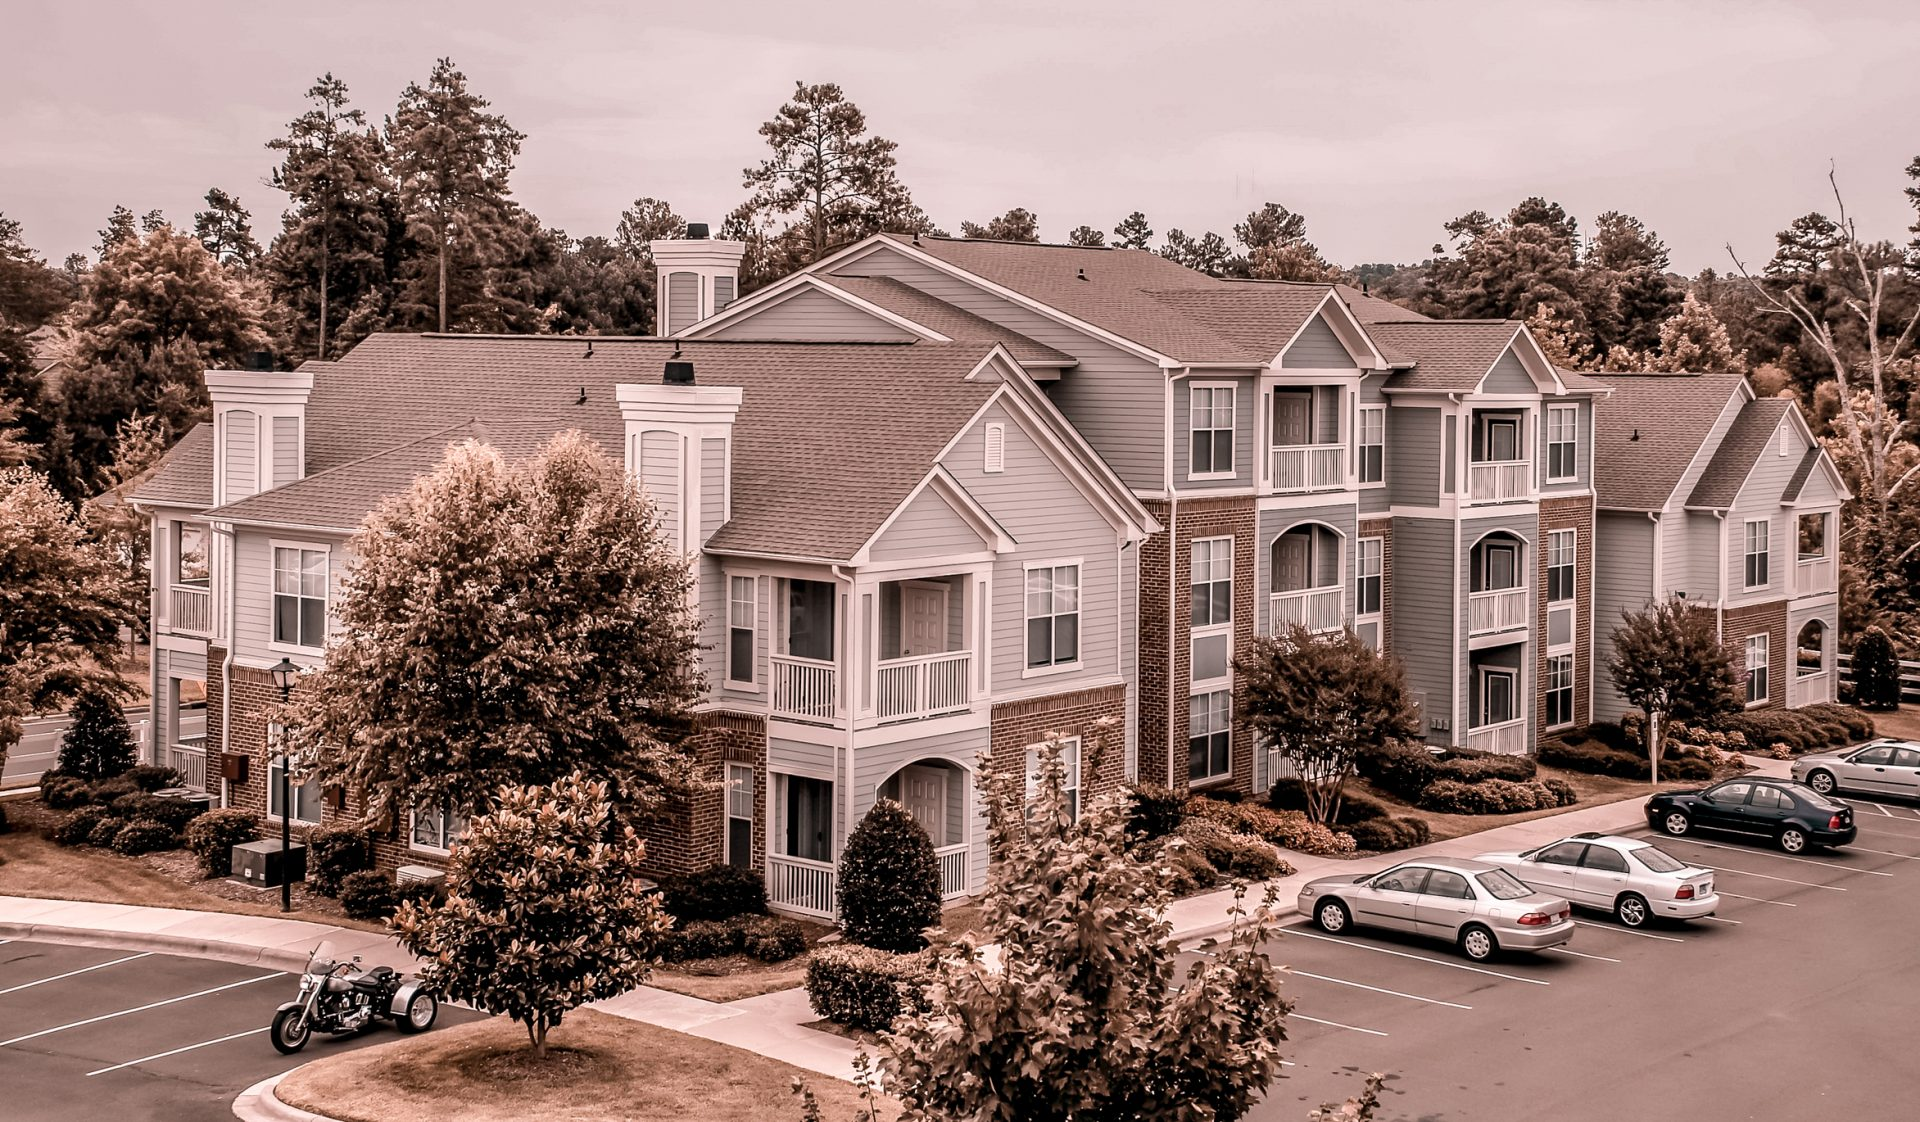 apartment syndication , multifamily investing , multifamily syndication investing, raising money for real estate syndication, commercial real estate multifamily investments